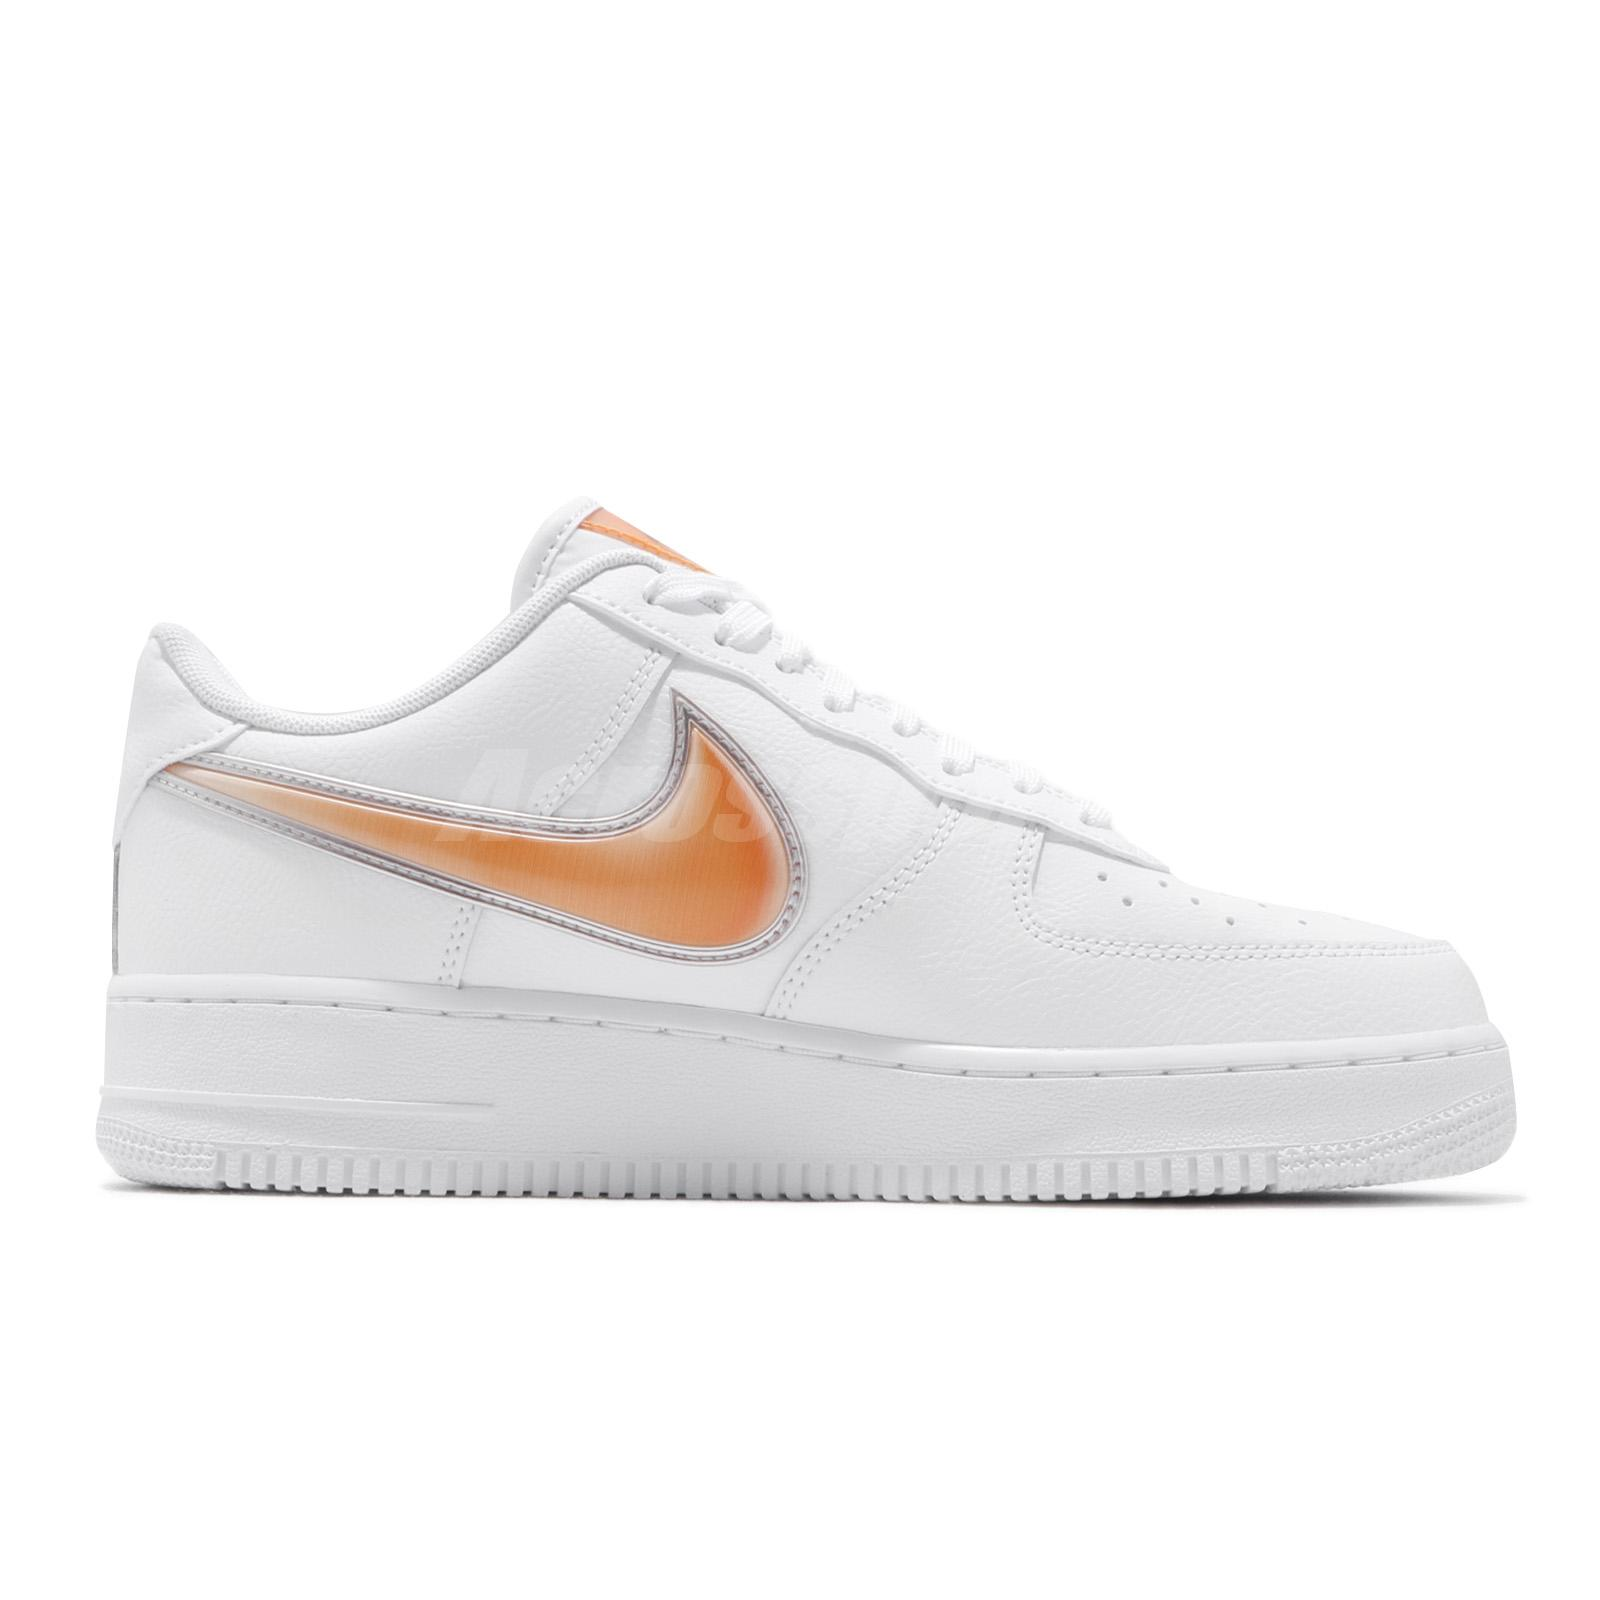 quality design 7741a 8fcd6 Details about Nike Air Force 1 07 LV8 3 Oversized Swoosh White Orange Peel  Men Shoe AO2441-102